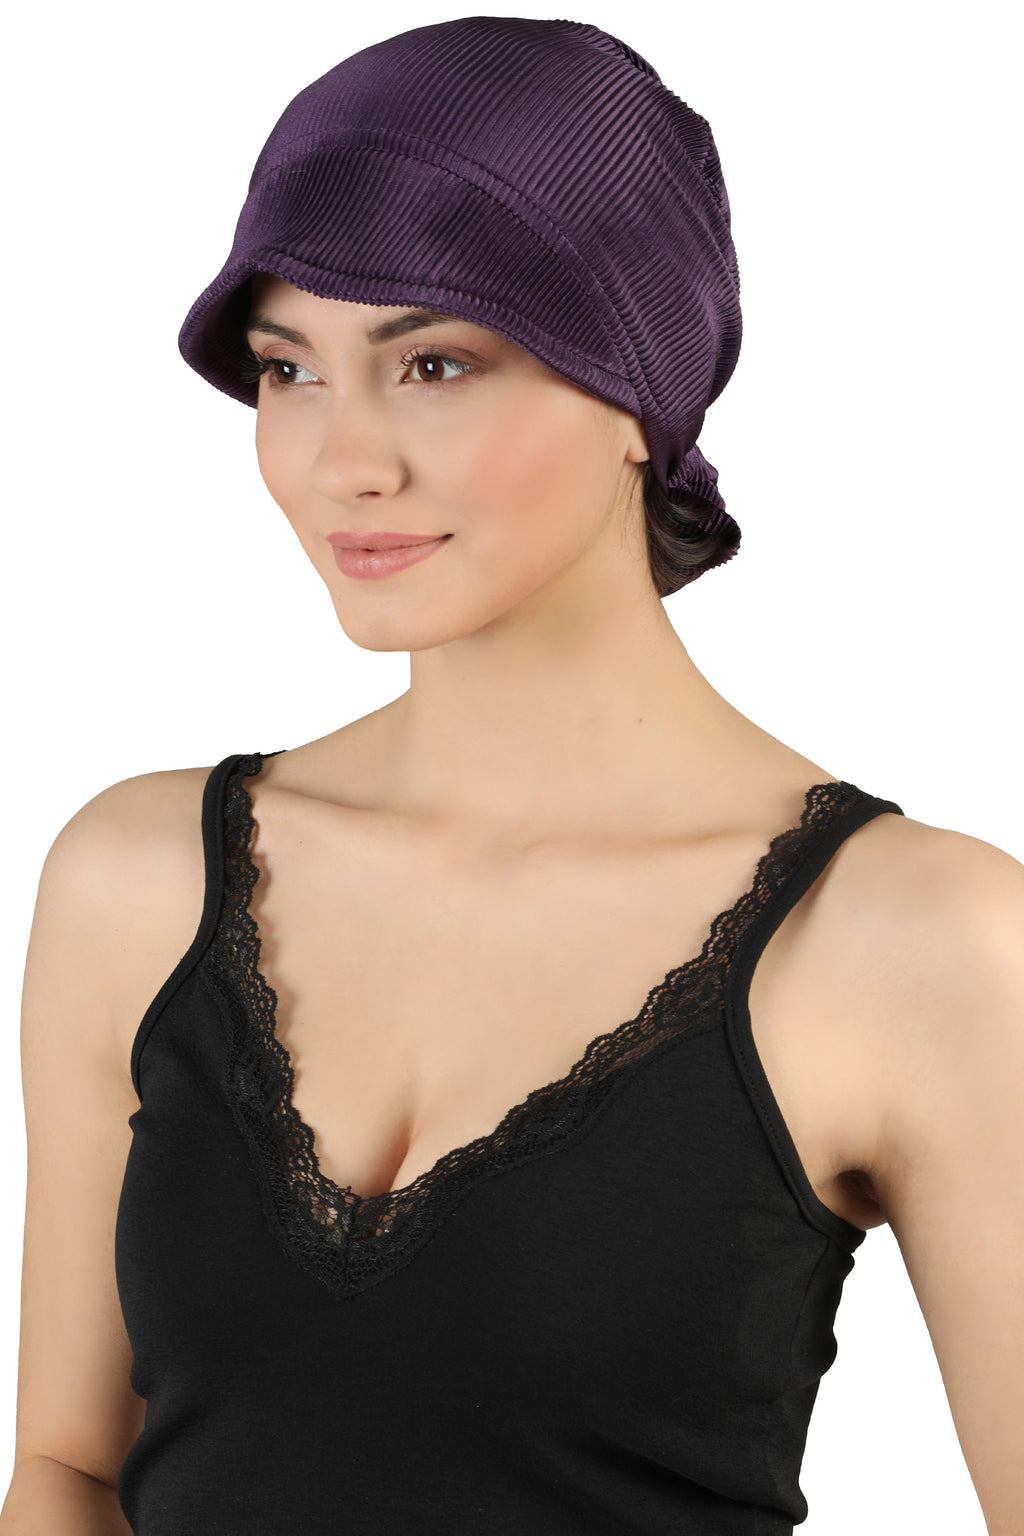 Tie Back Casual Pretty Hat - Mulberry